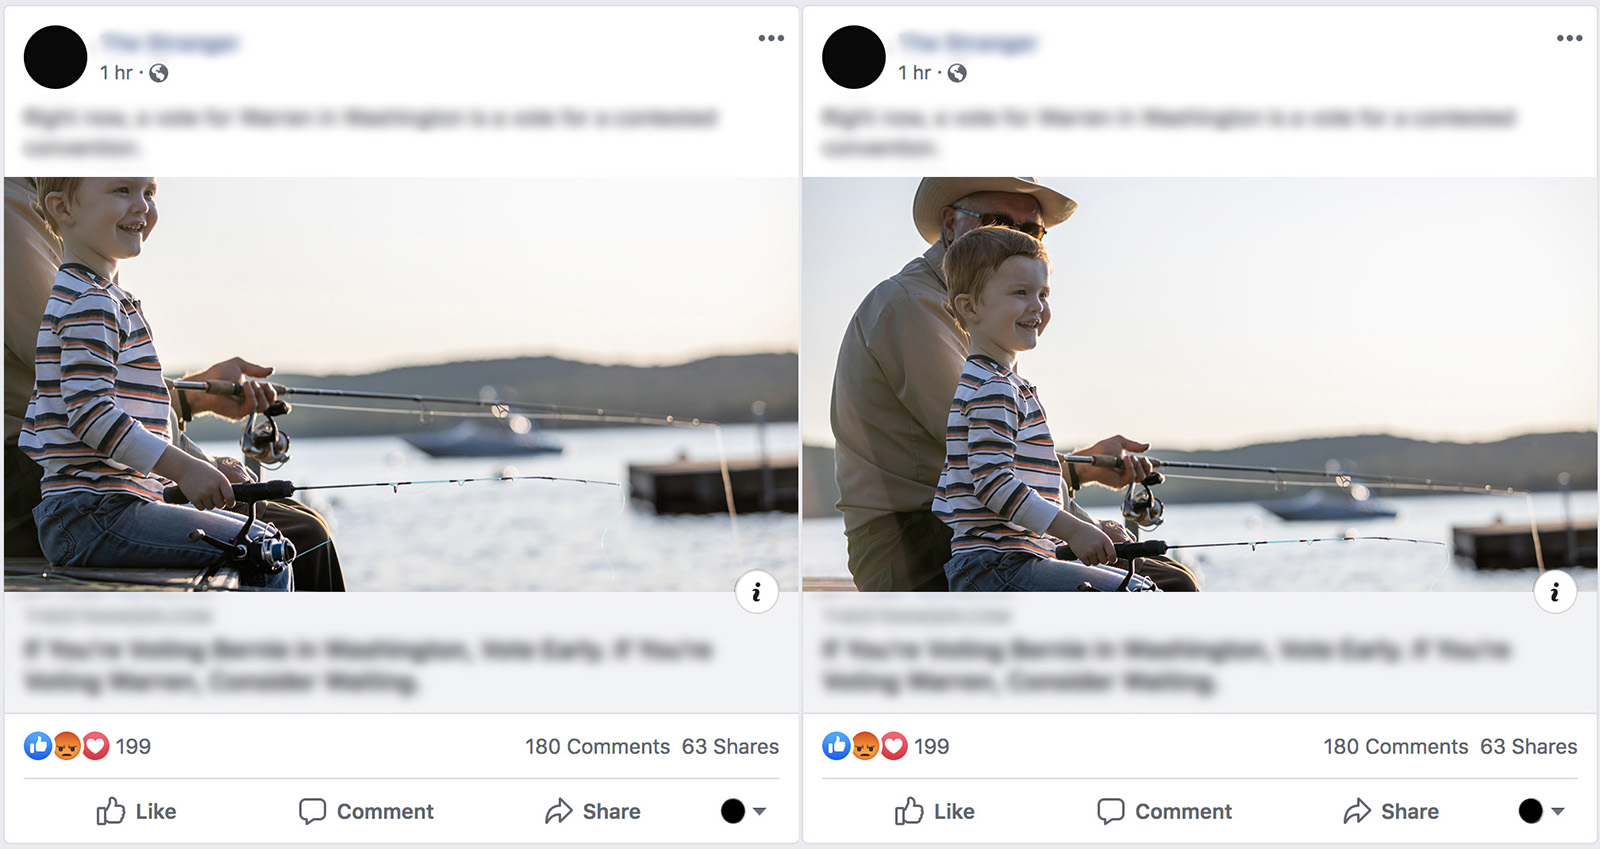 side by side comparisons of an image with a boy to illustrate the effects image size has on quality when posting to social media